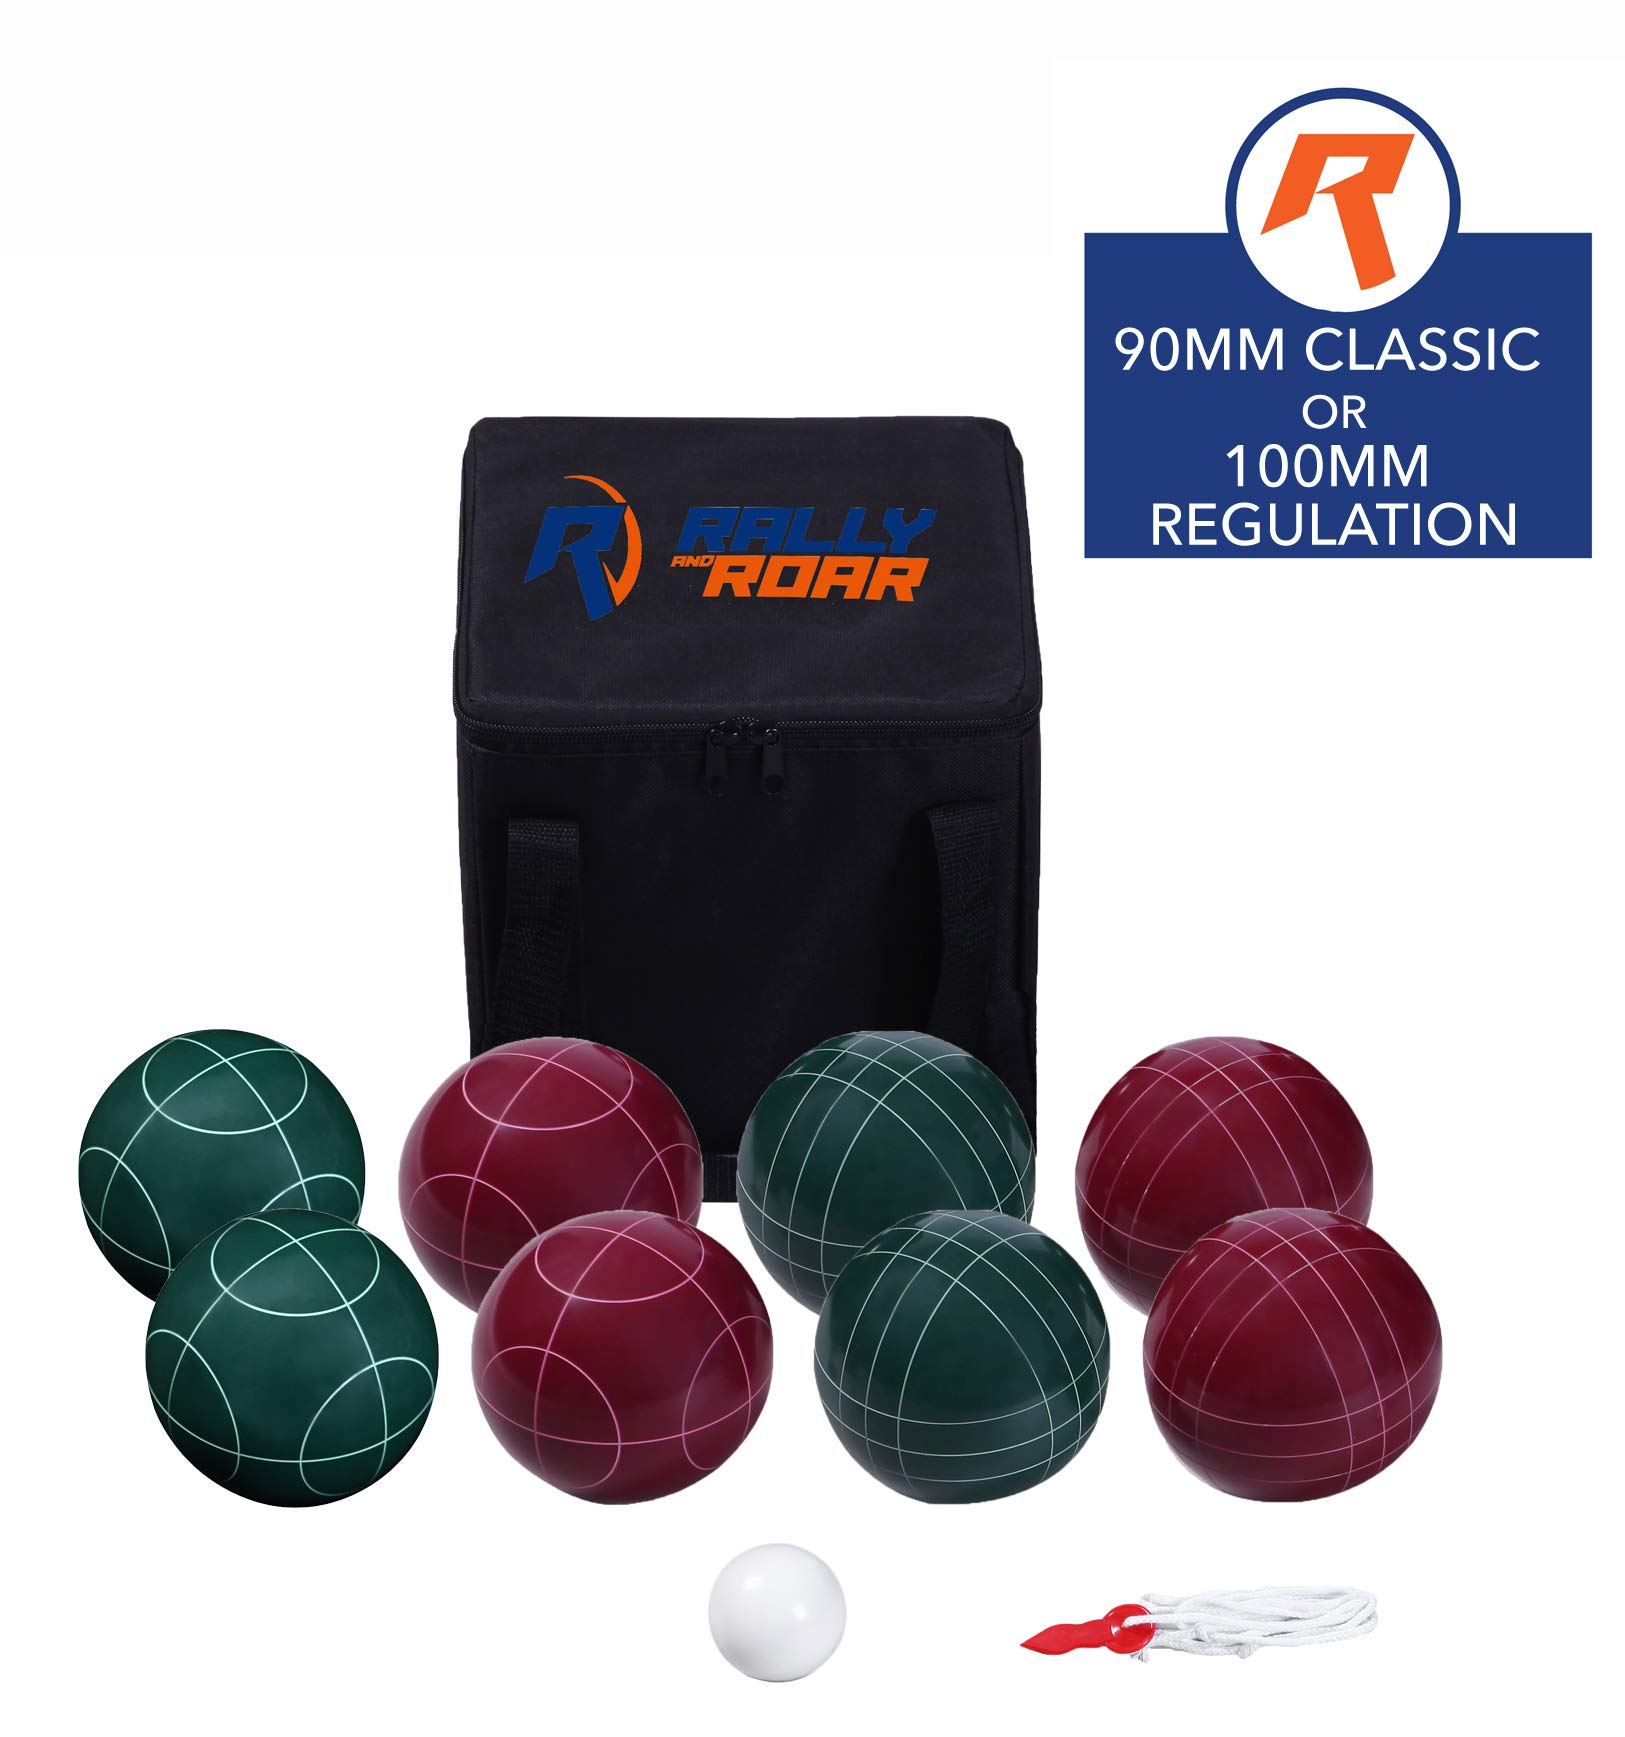 Bocce Ball Game Set for Adults, Families - 100 mm - Complete Bocce Yard and Lawn Games with Carrying and Storage Case by Rally and Roar - Fun Outdoor, Backyard, Family, Beach Game by Rally and Roar